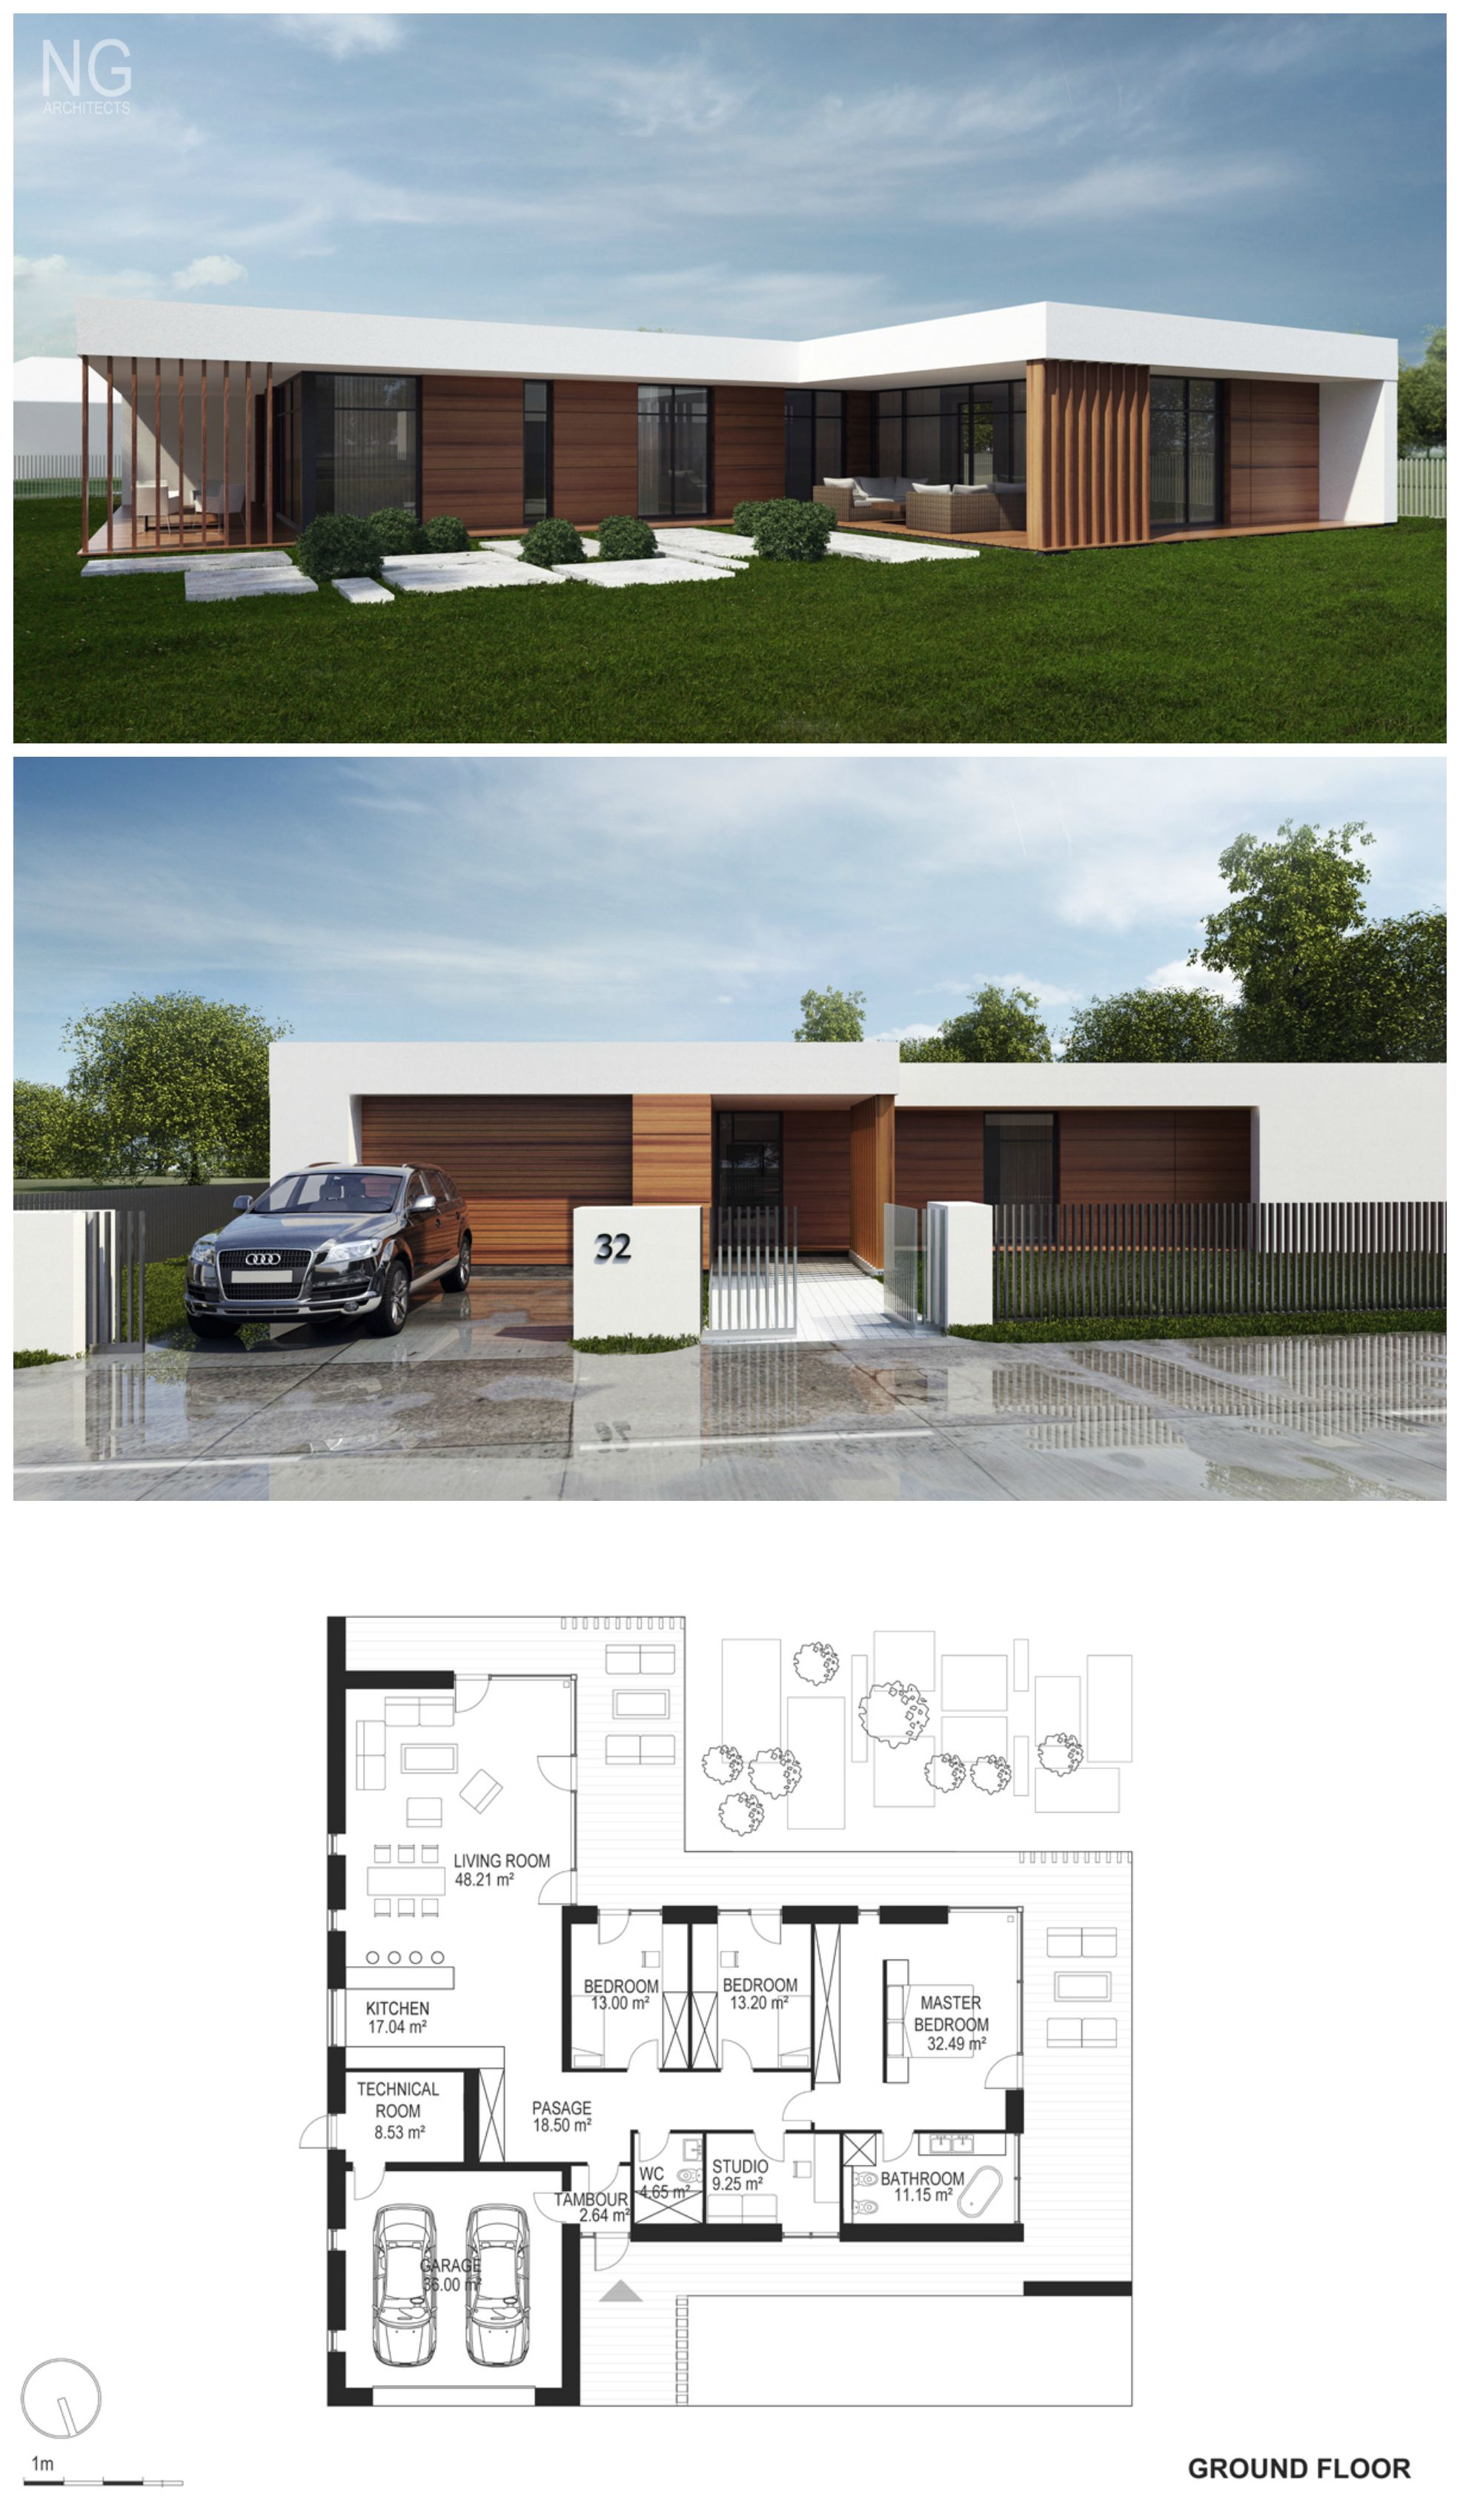 modern 240 m2 house designed by NG architects – Modern Architecture Homes Floor Plans